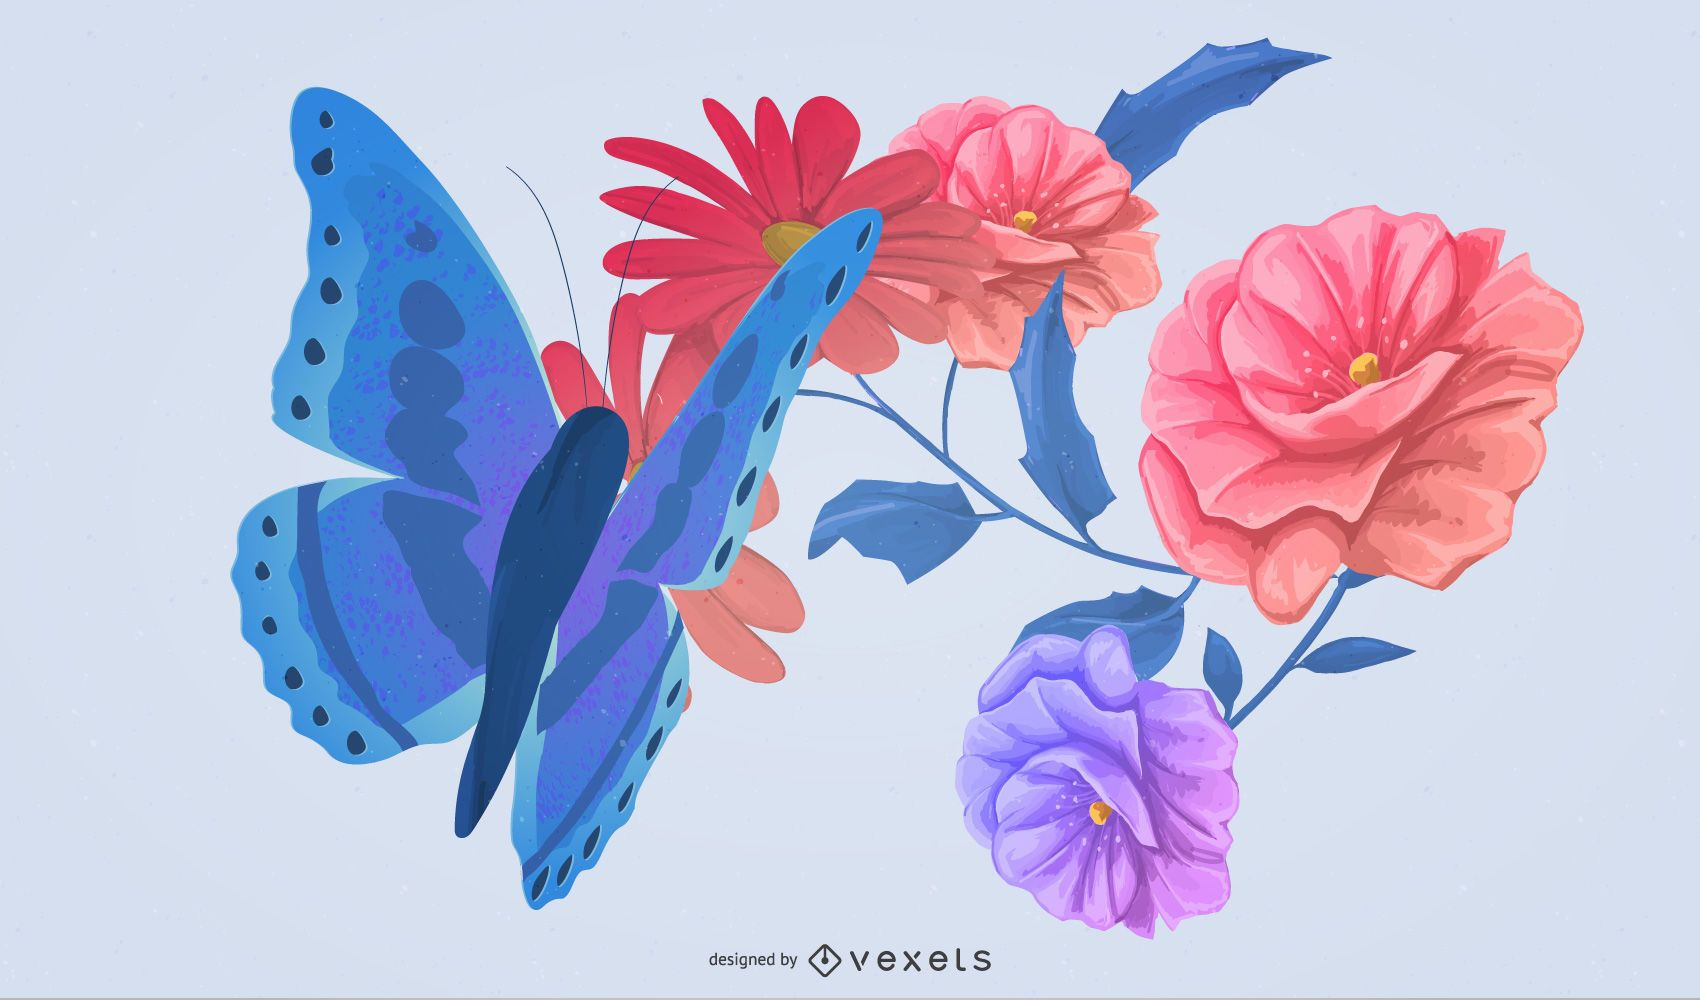 butterflies and flowers illustration design